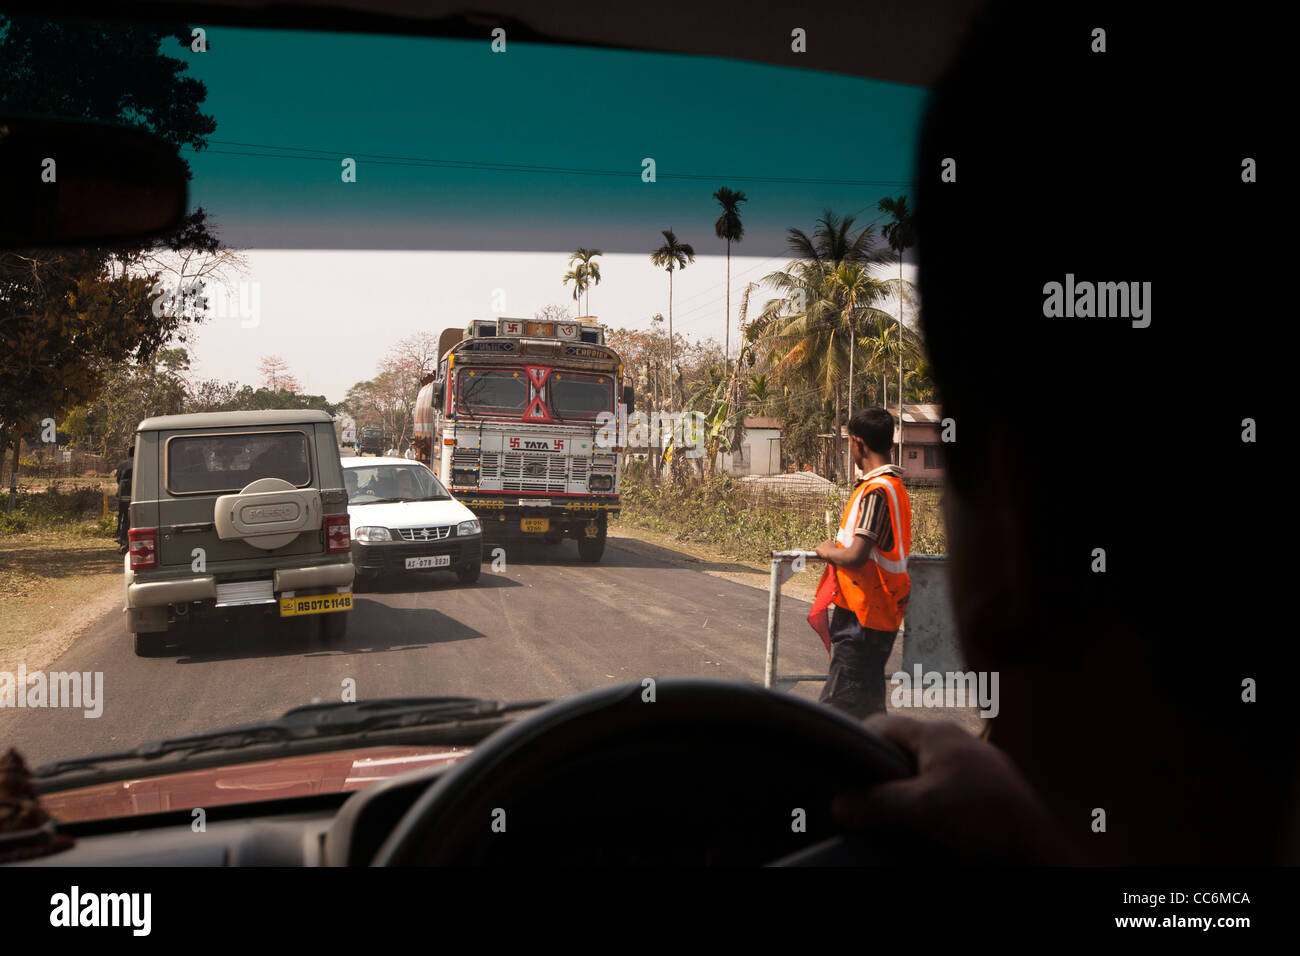 India, Assam, Balipari bad driving, traffic chaos on roads due to untrained drivers - Stock Image